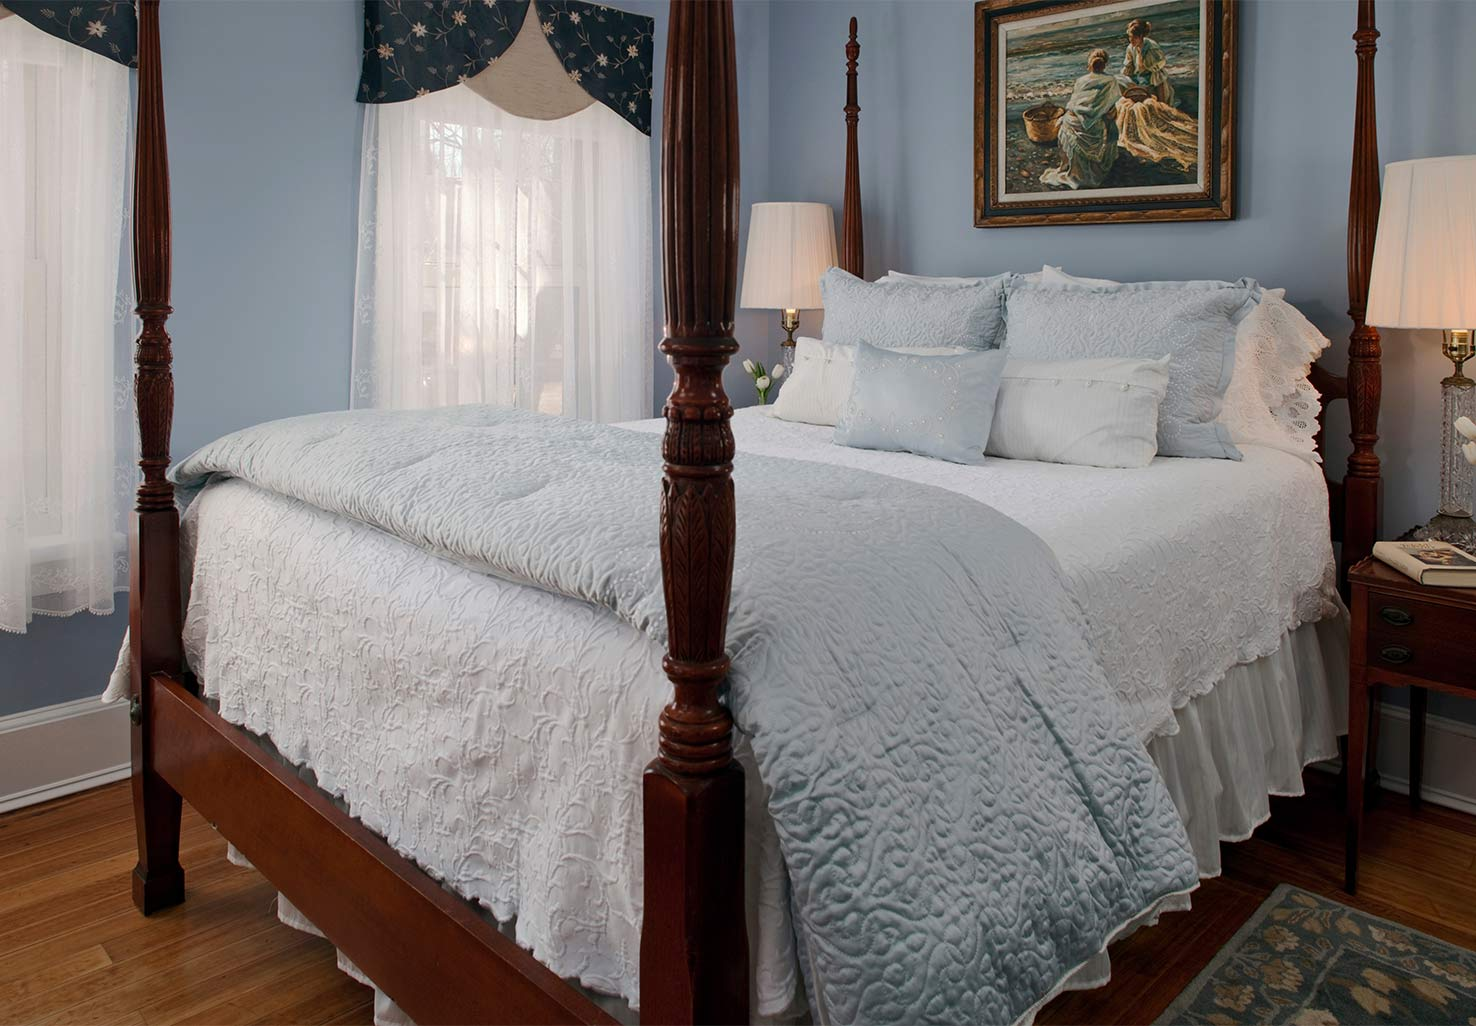 Four poster queen bed in a room with light blue walls